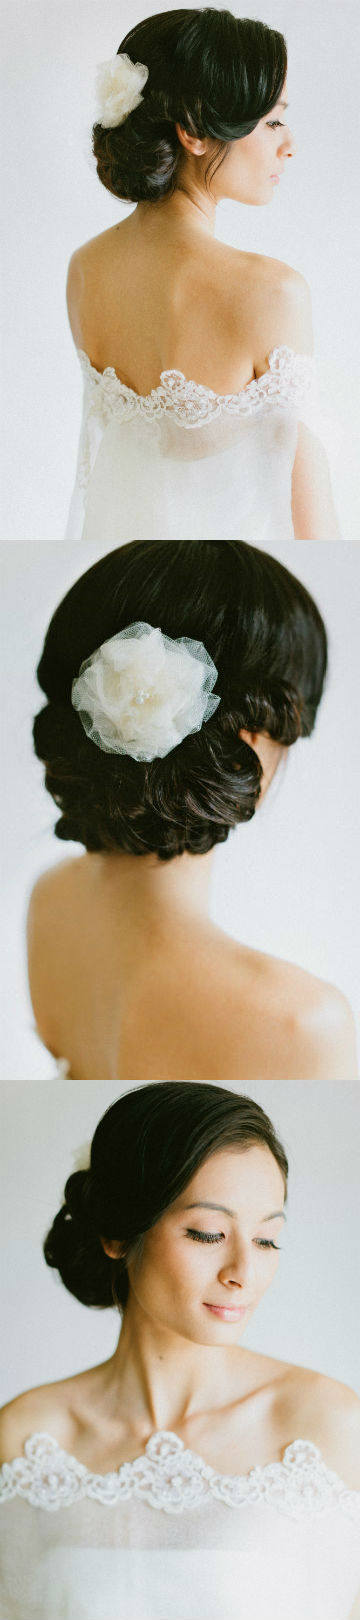 Chignon wedding hairstyle trends